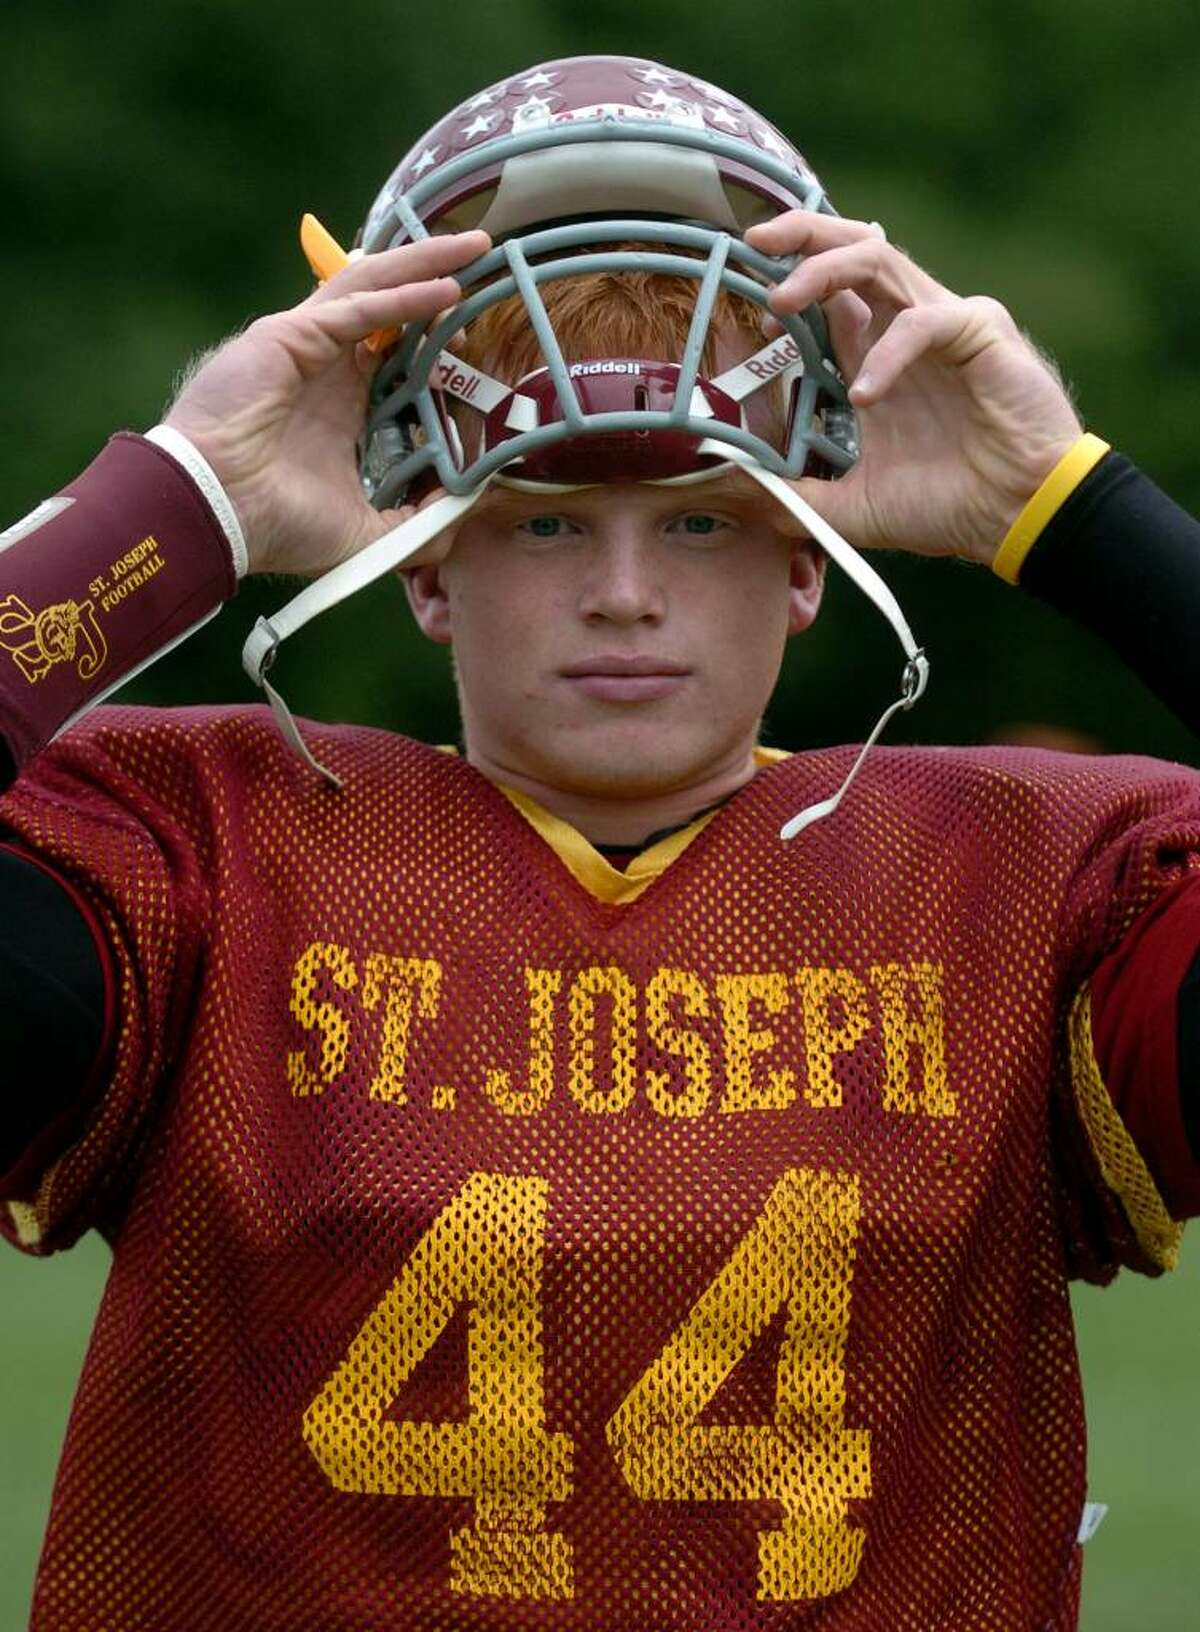 Tyler Matakevich at St. Joseph's football practice in Trumbull, Conn. on Wednesday Sept. 30, 2009.